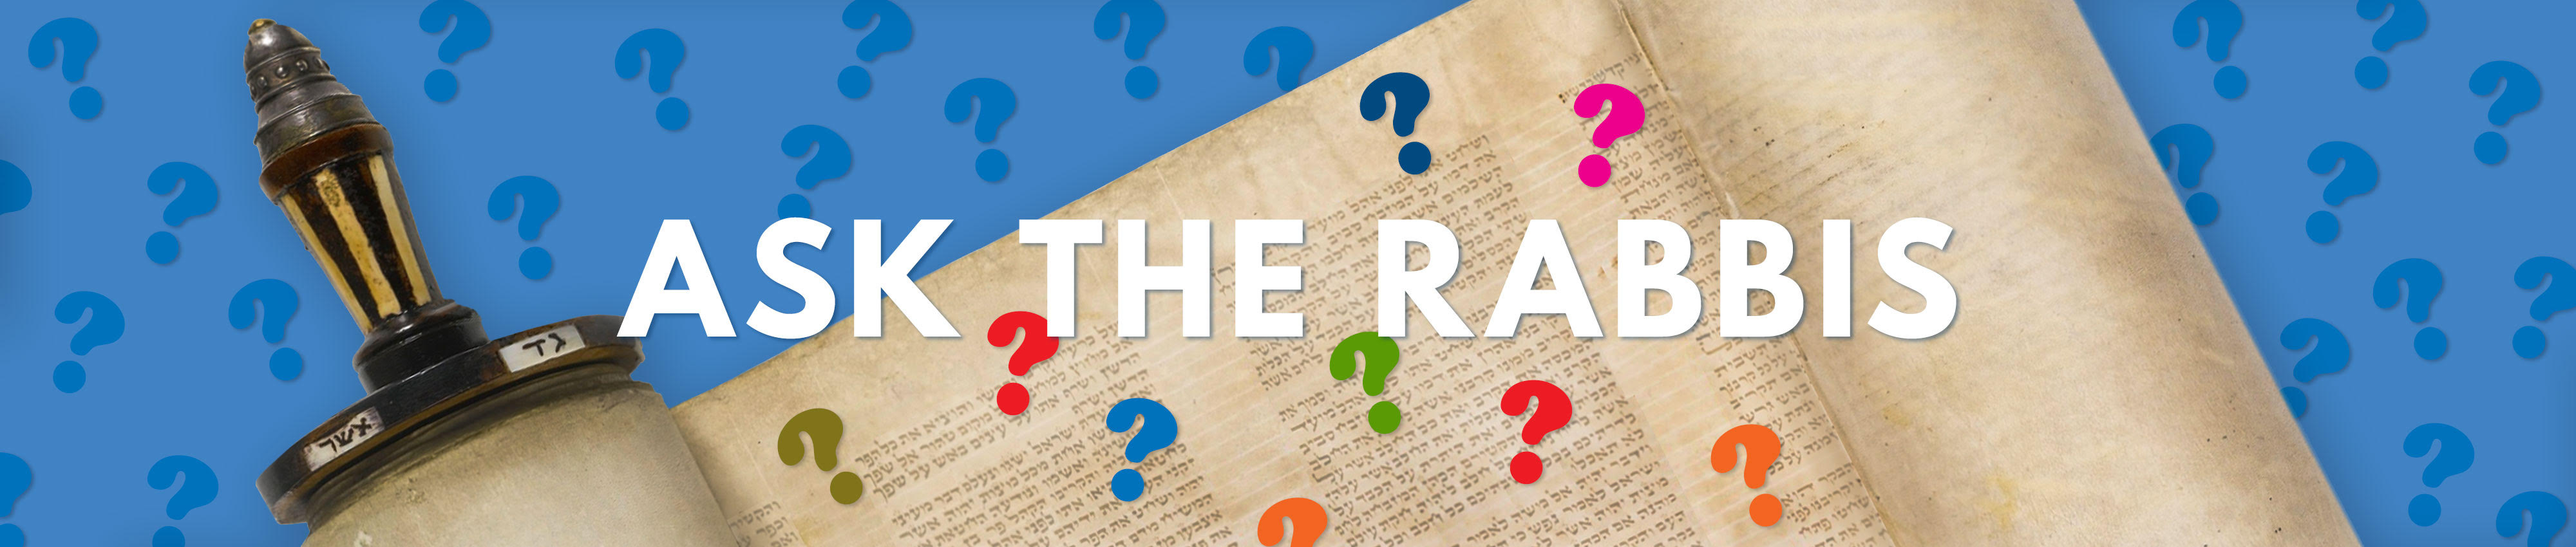 Ask The Rabbis | What Is the Most Important High Holidays Prayer?